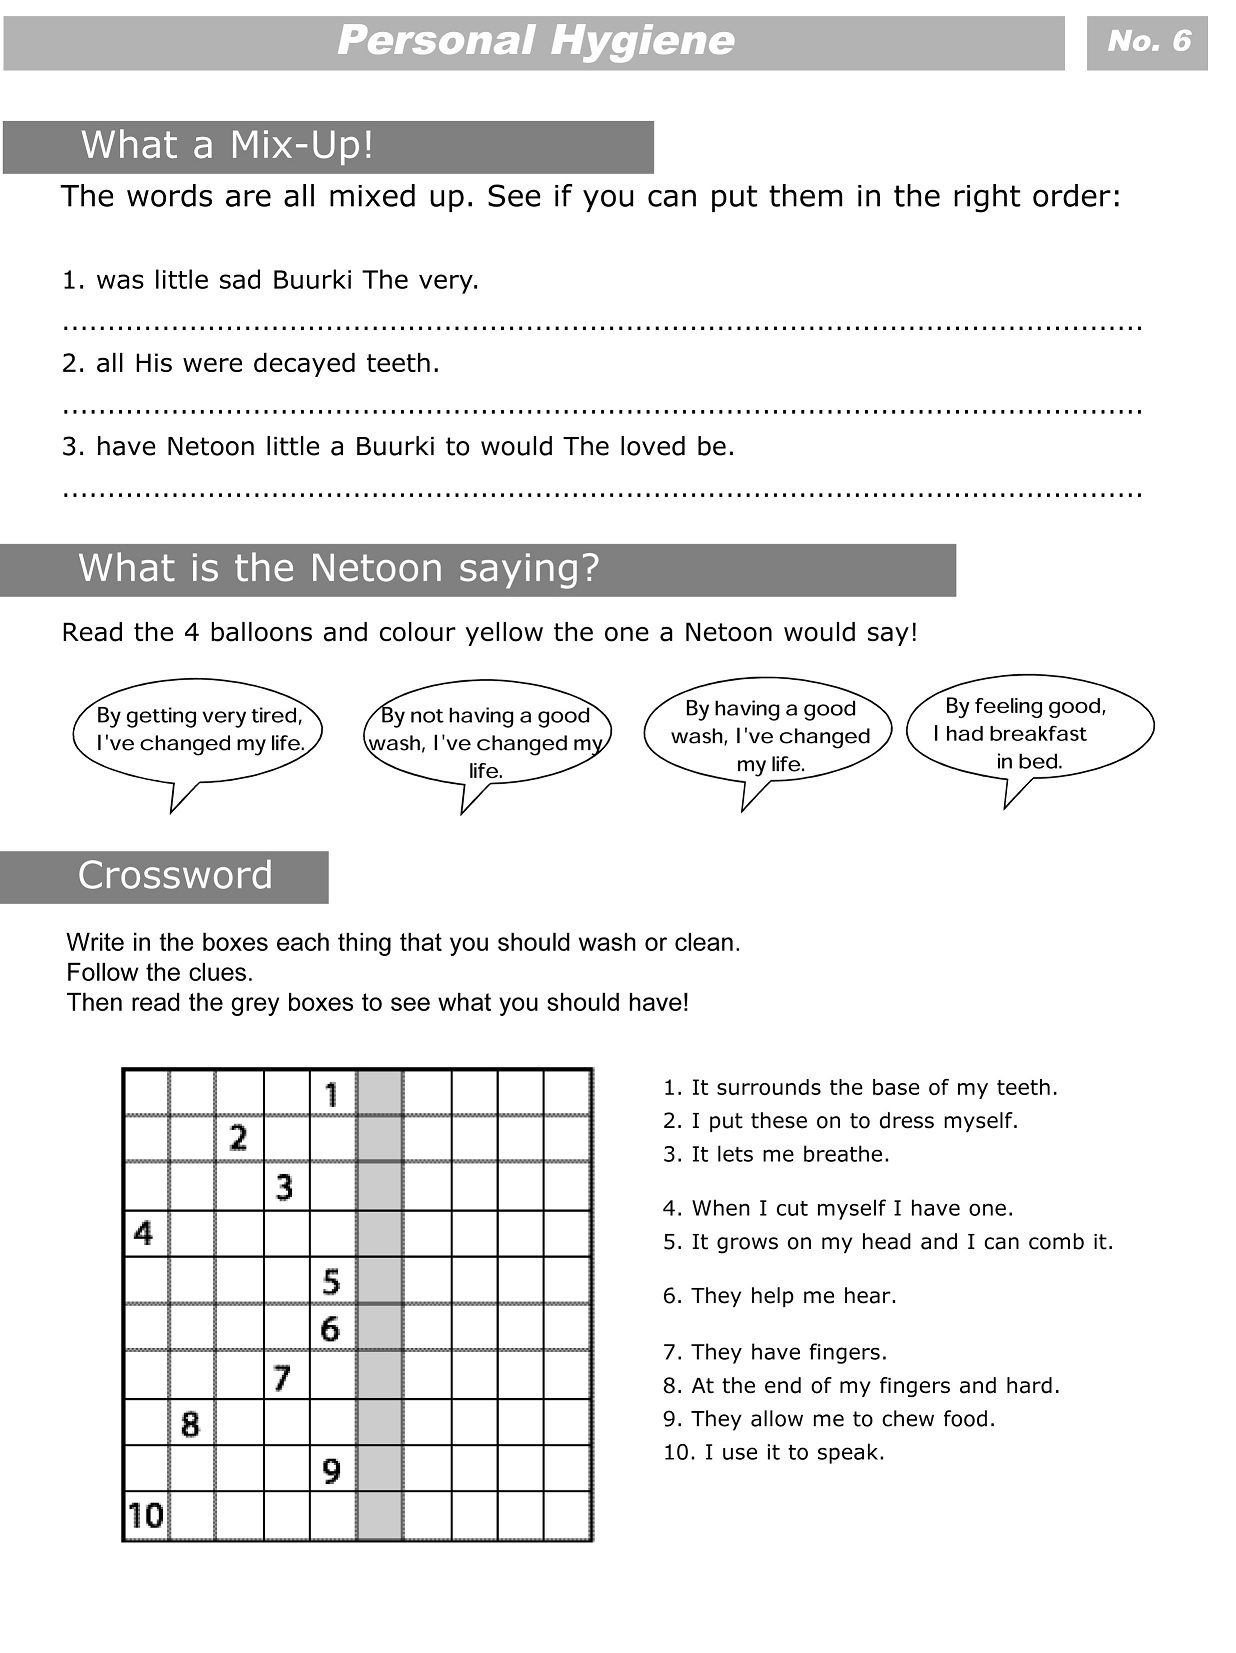 personal hygiene worksheets for kids 6 | Personal hygiene ...